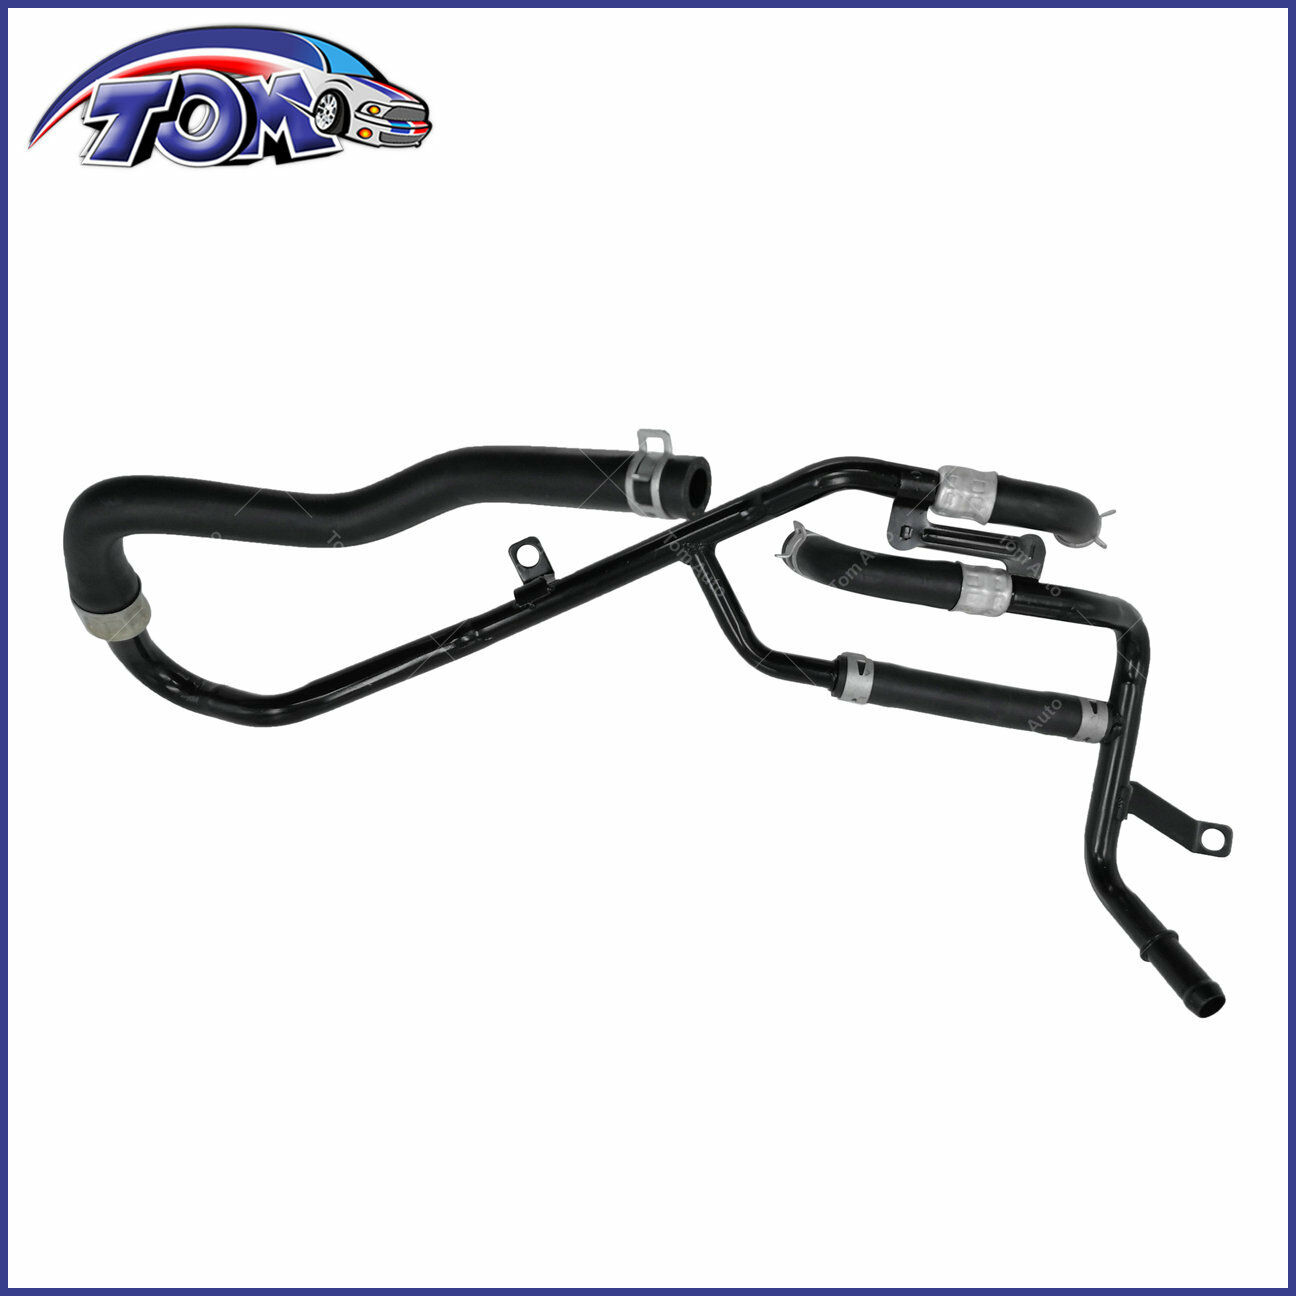 HVAC Heater Hose Assembly Inlet /& Outlet For Ford Taurus Mercury Sable